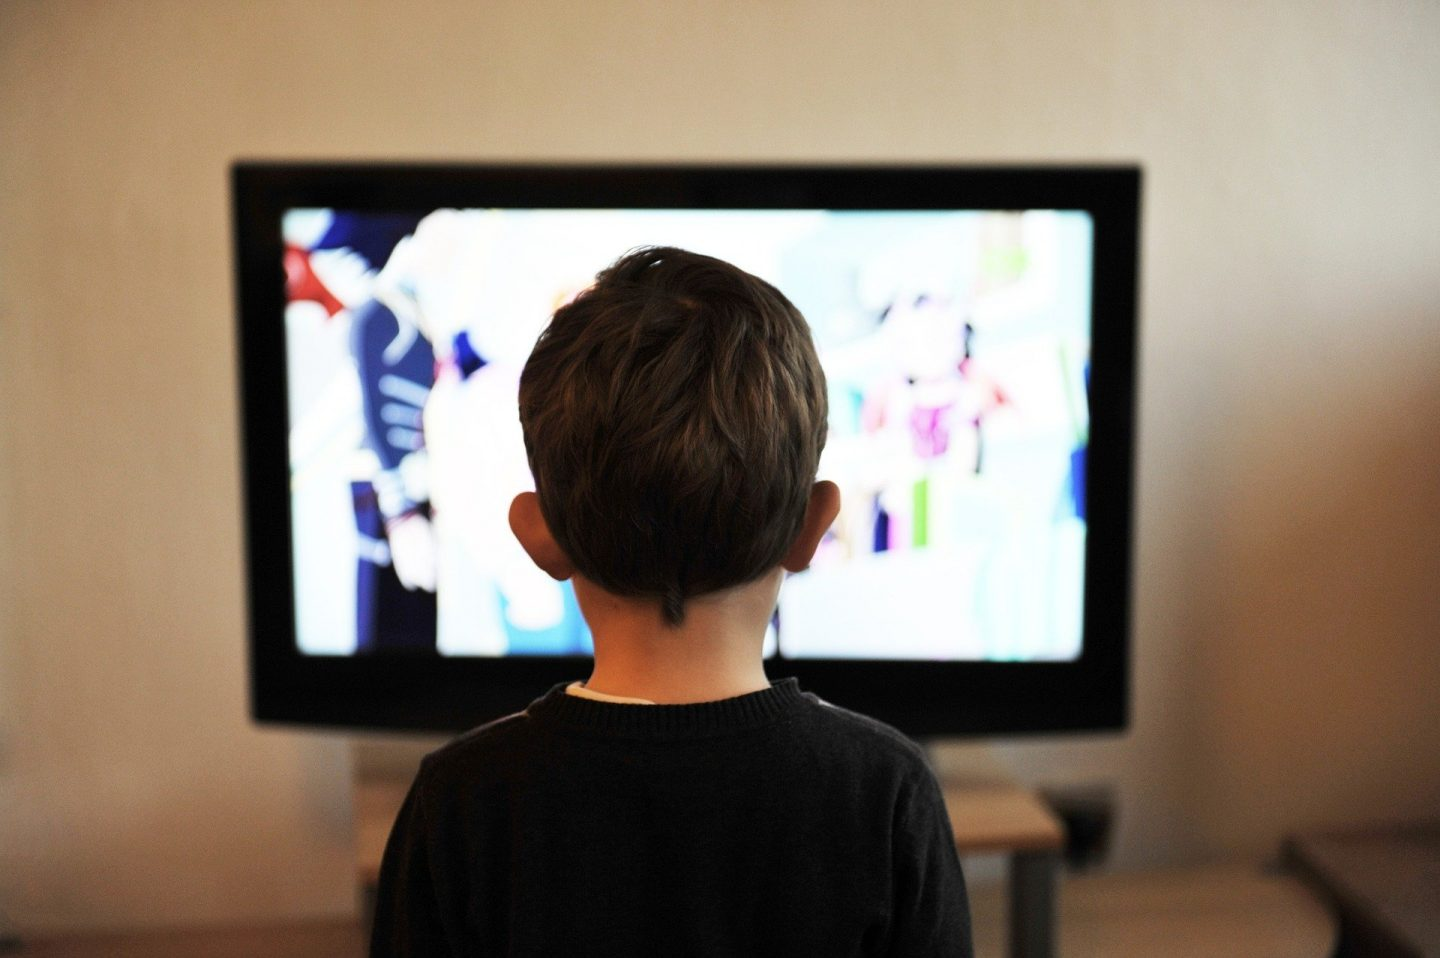 child watching tv to support their learning in a new language